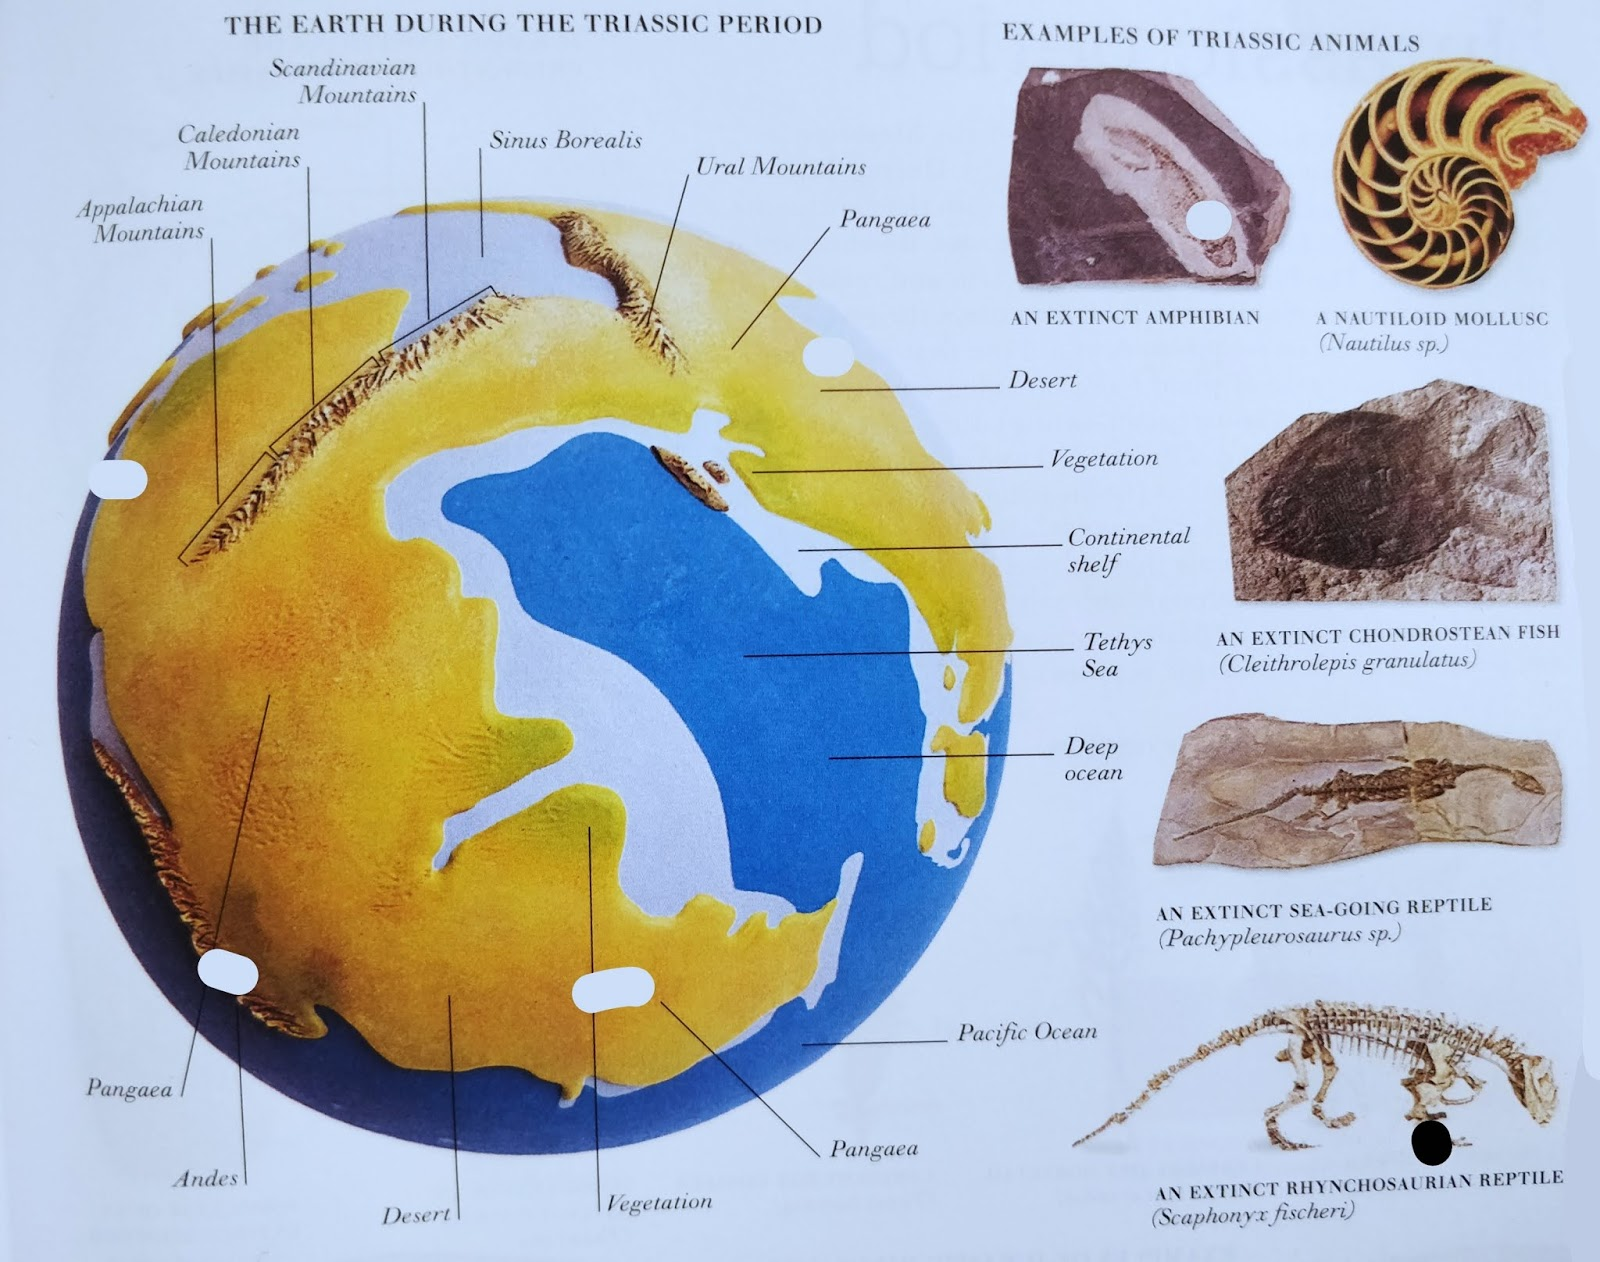 Triassic period and jurassic period the learning book knowledge the earth during triassic period gumiabroncs Choice Image